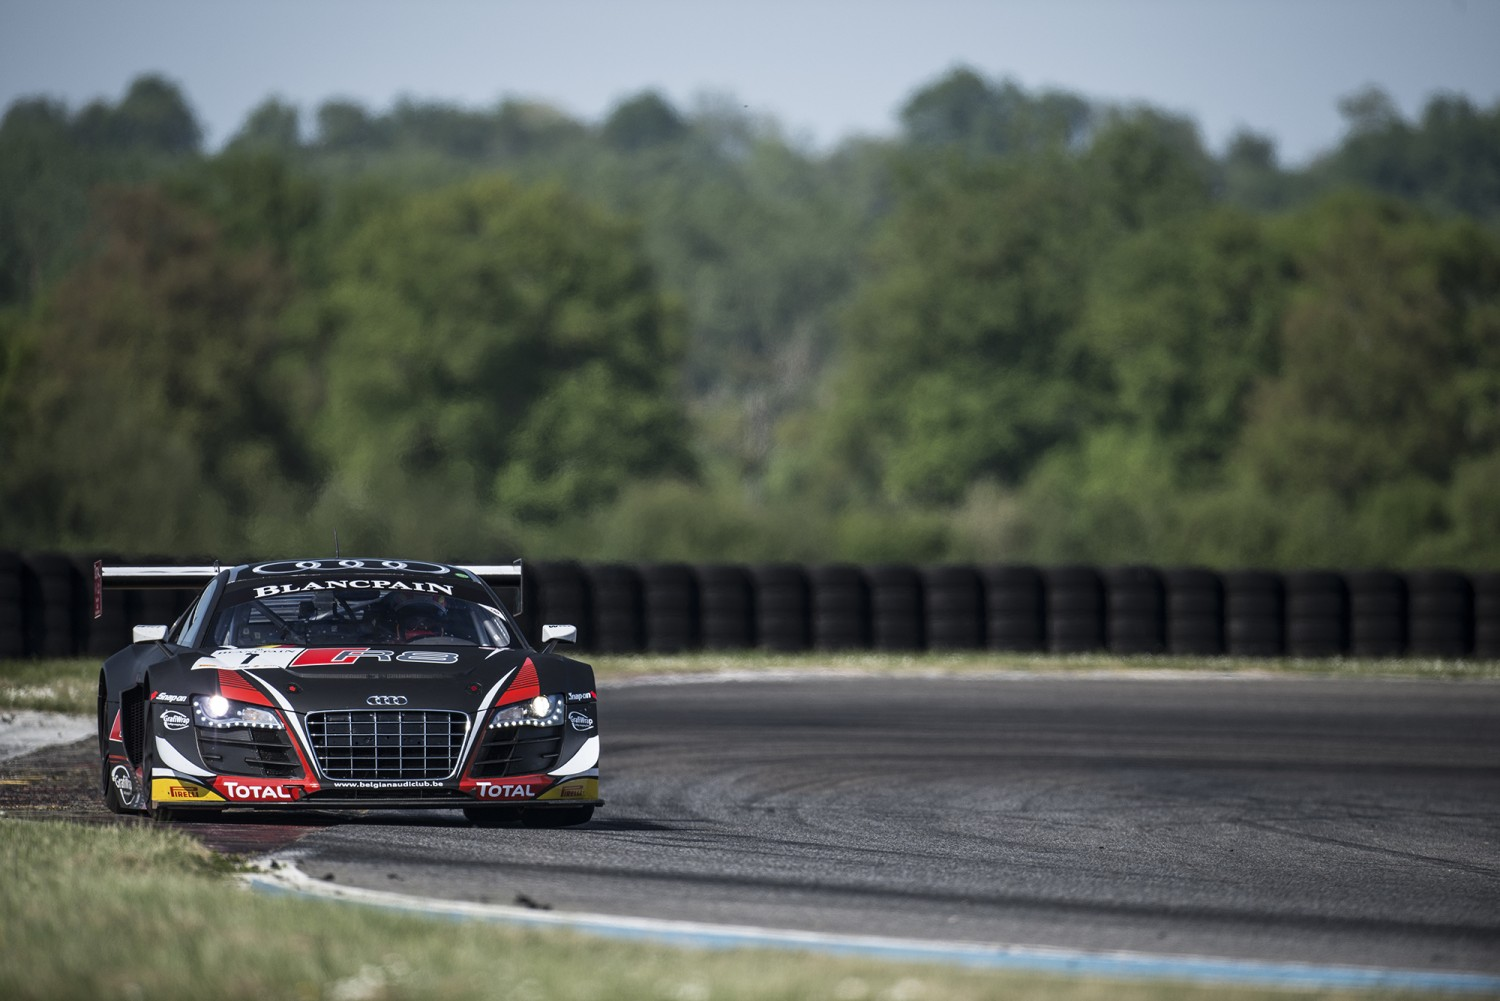 Nogaro - Free practice 1 : Impressive start of the weekend by the Audi teams